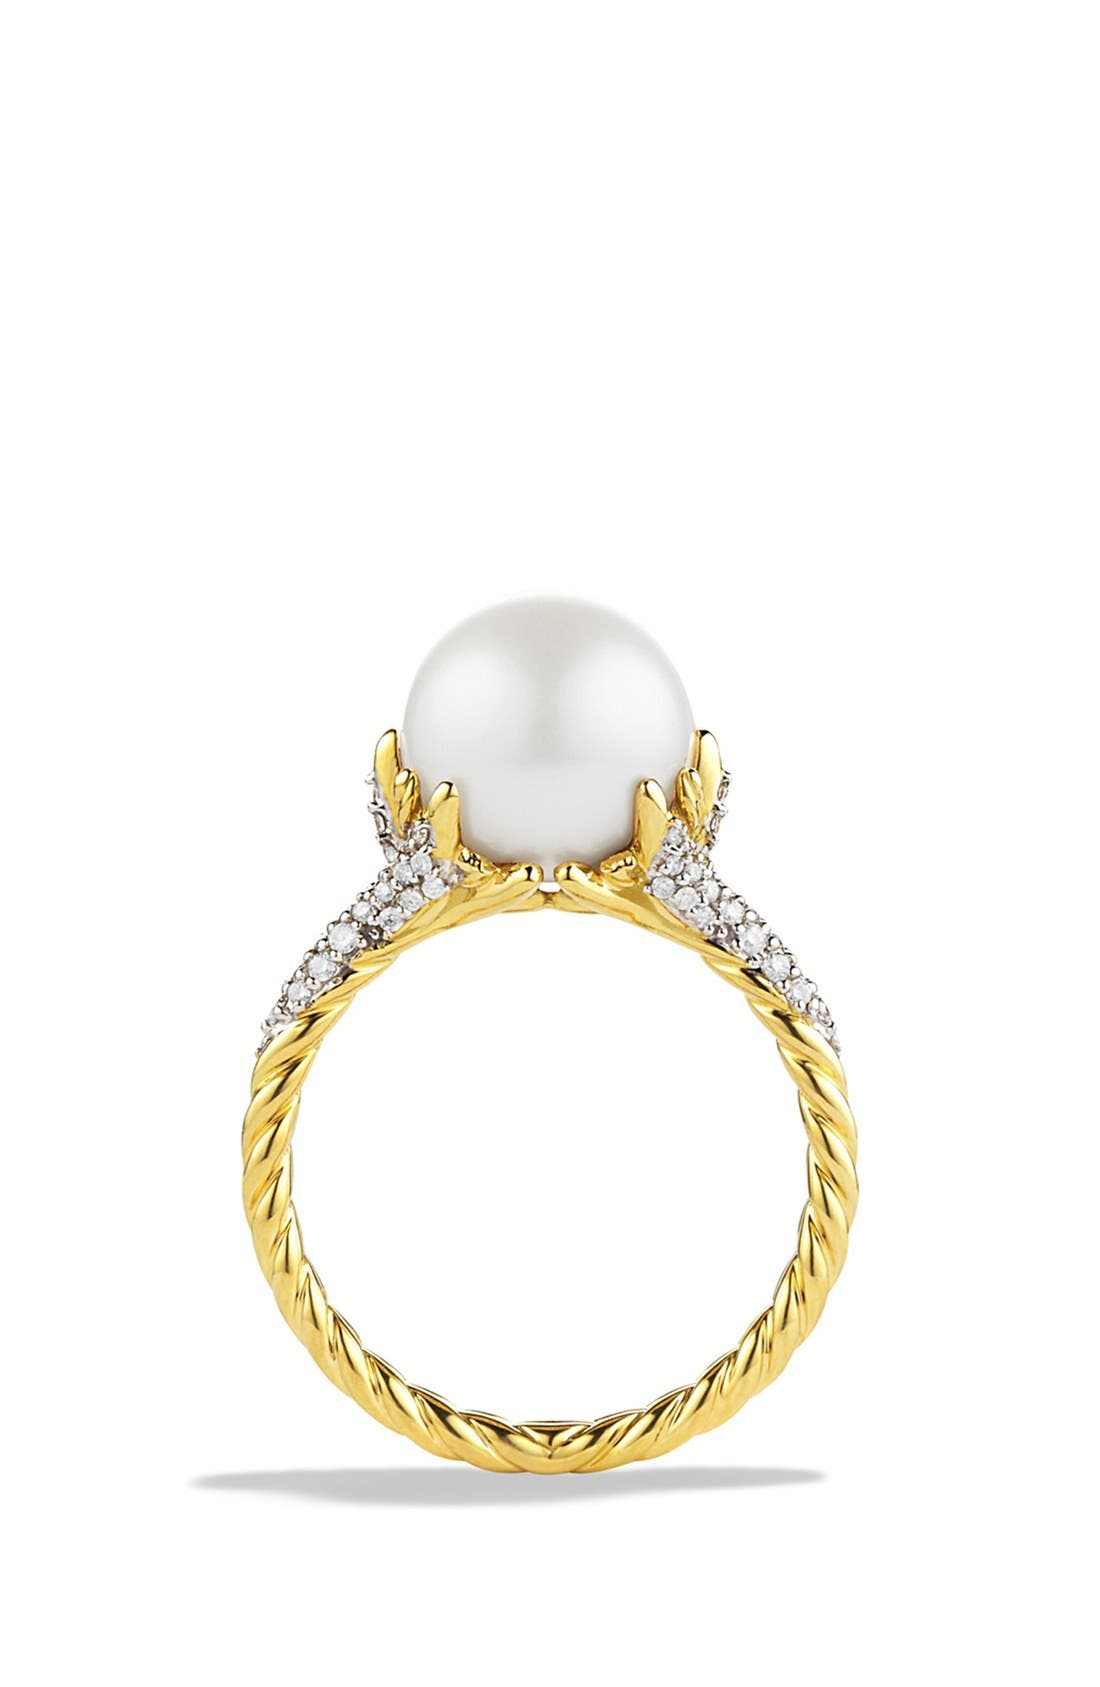 'Starburst' Pearl Ring with Diamonds in Gold,                             Alternate thumbnail 2, color,                             Pearl